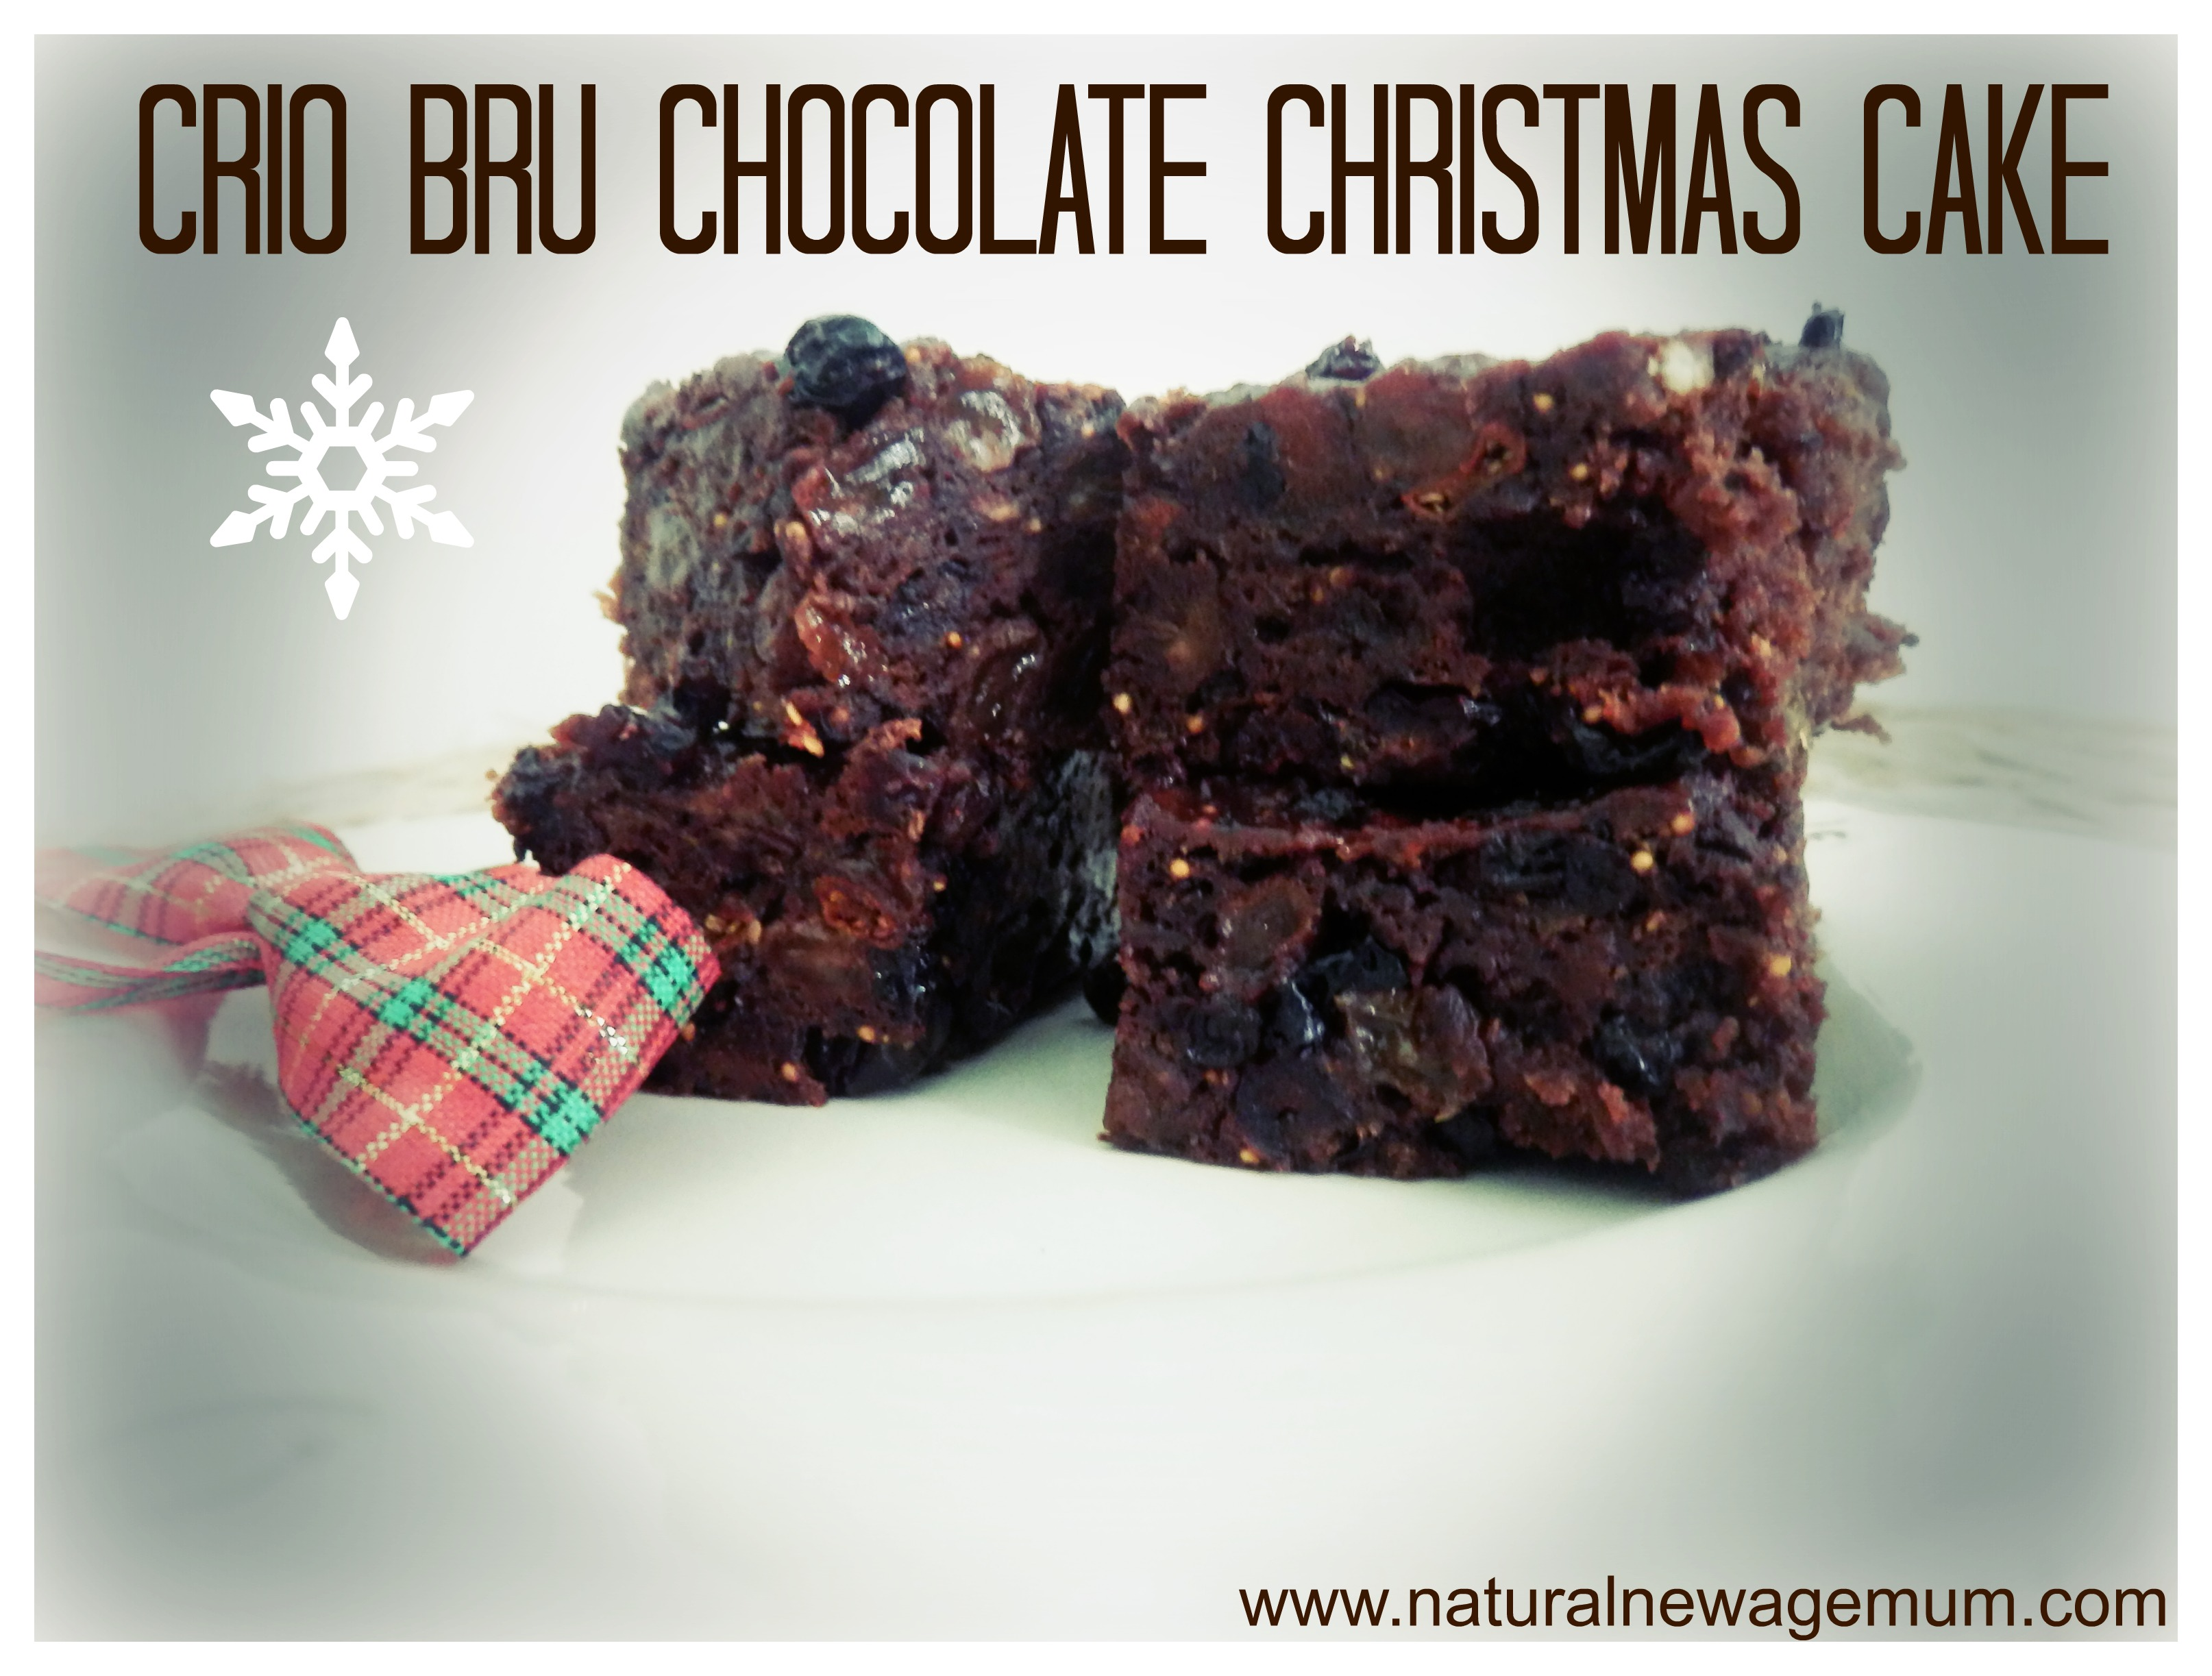 Crio Bru Chocolate Christmas Cake